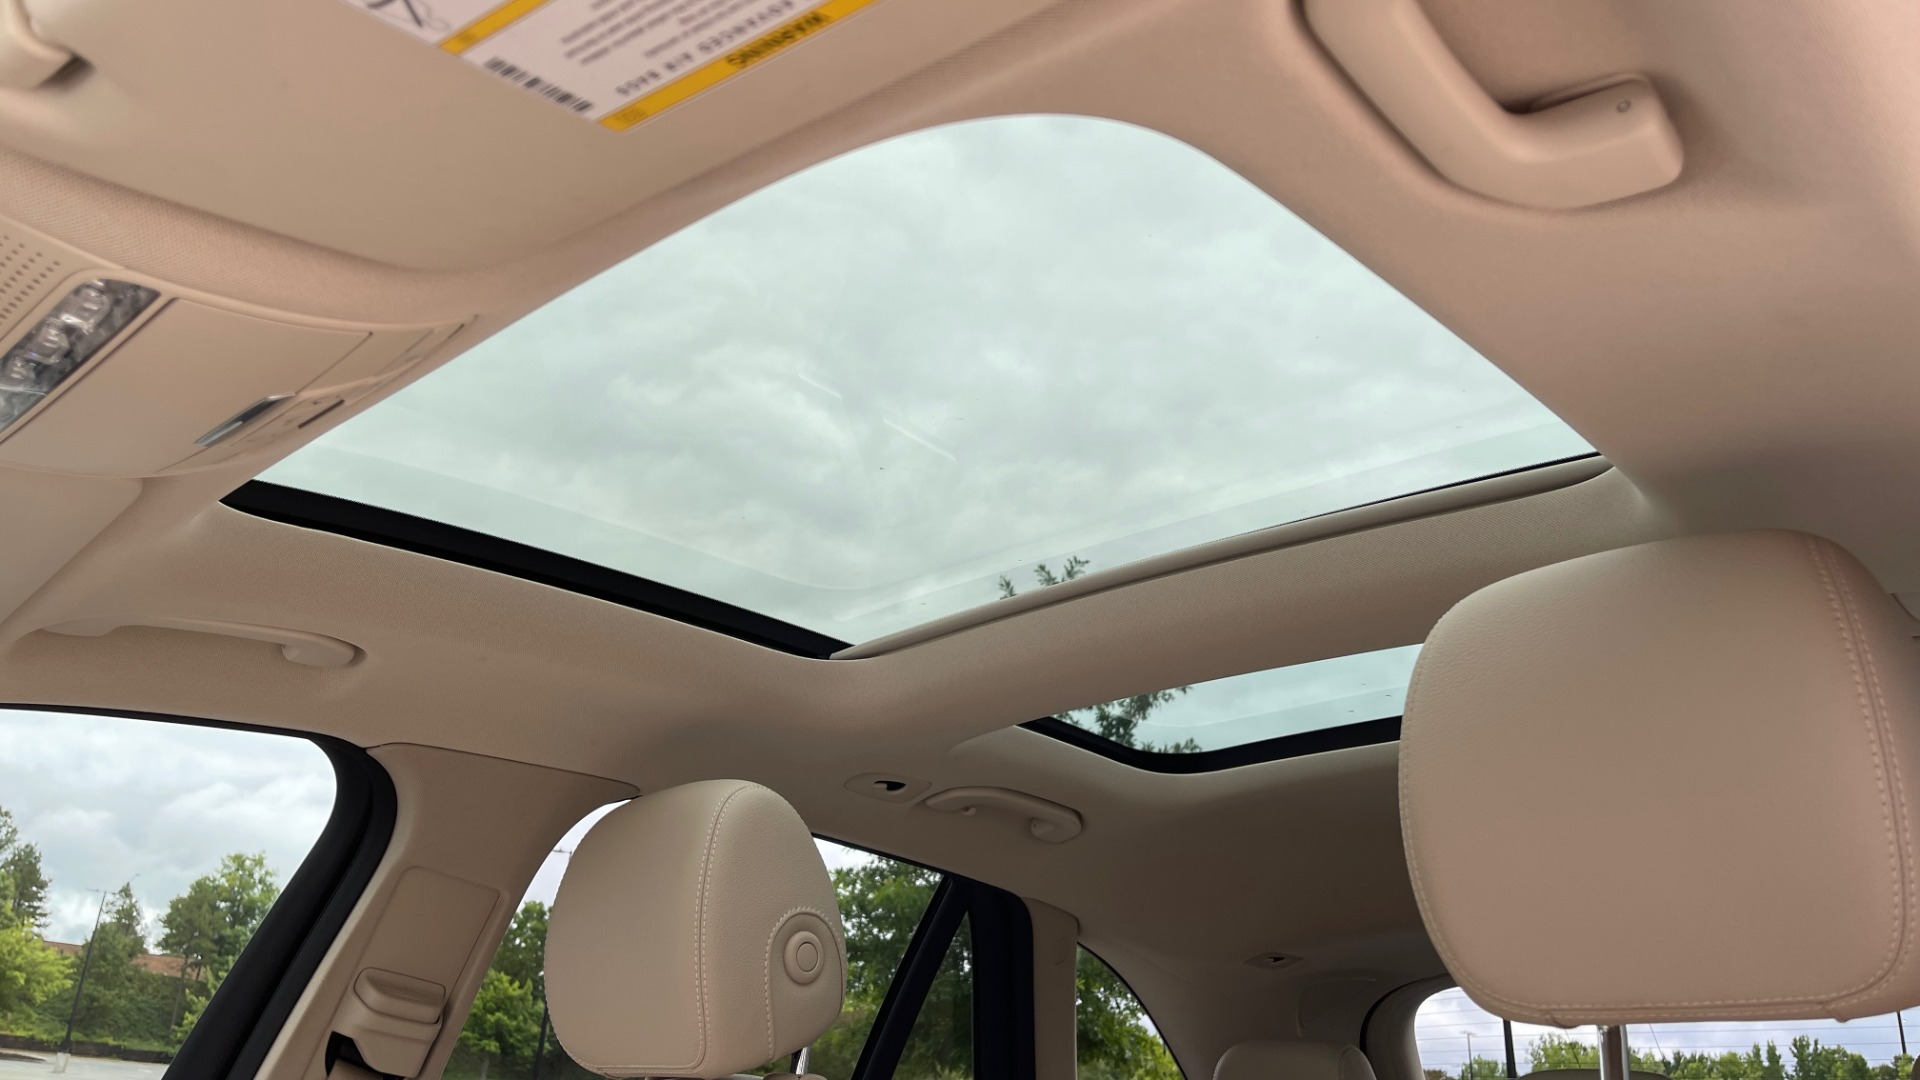 Used 2018 Mercedes-Benz GLC 300 PREMIUM / PANO-ROOF / HTD STS / PARK ASST / REARVIEW for sale $34,613 at Formula Imports in Charlotte NC 28227 44